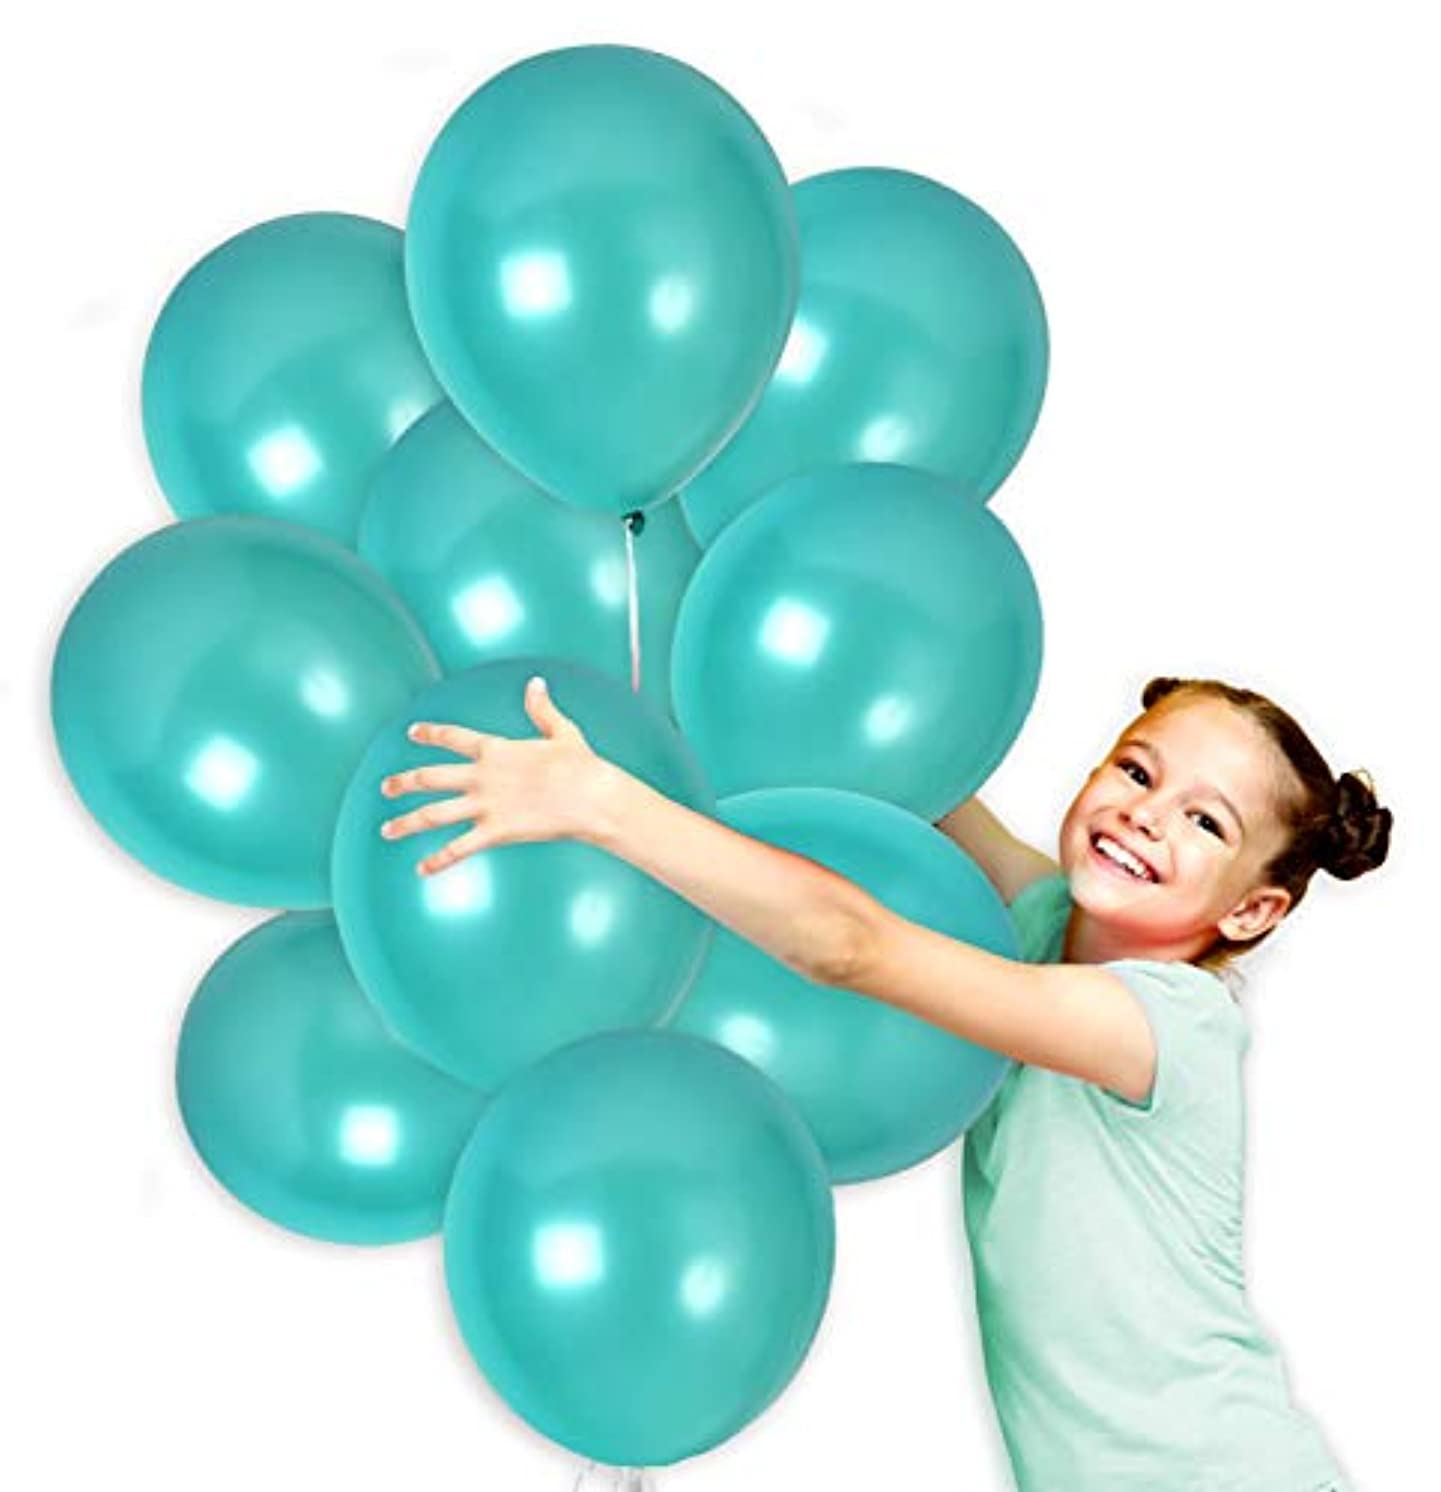 Turquoise Teal Metallic Balloons Set Bouquet in 12 Inch Thick Latex for Mermaid Birthday Baby Shower Wedding Bachelorette Party Decorations (36 Pack)